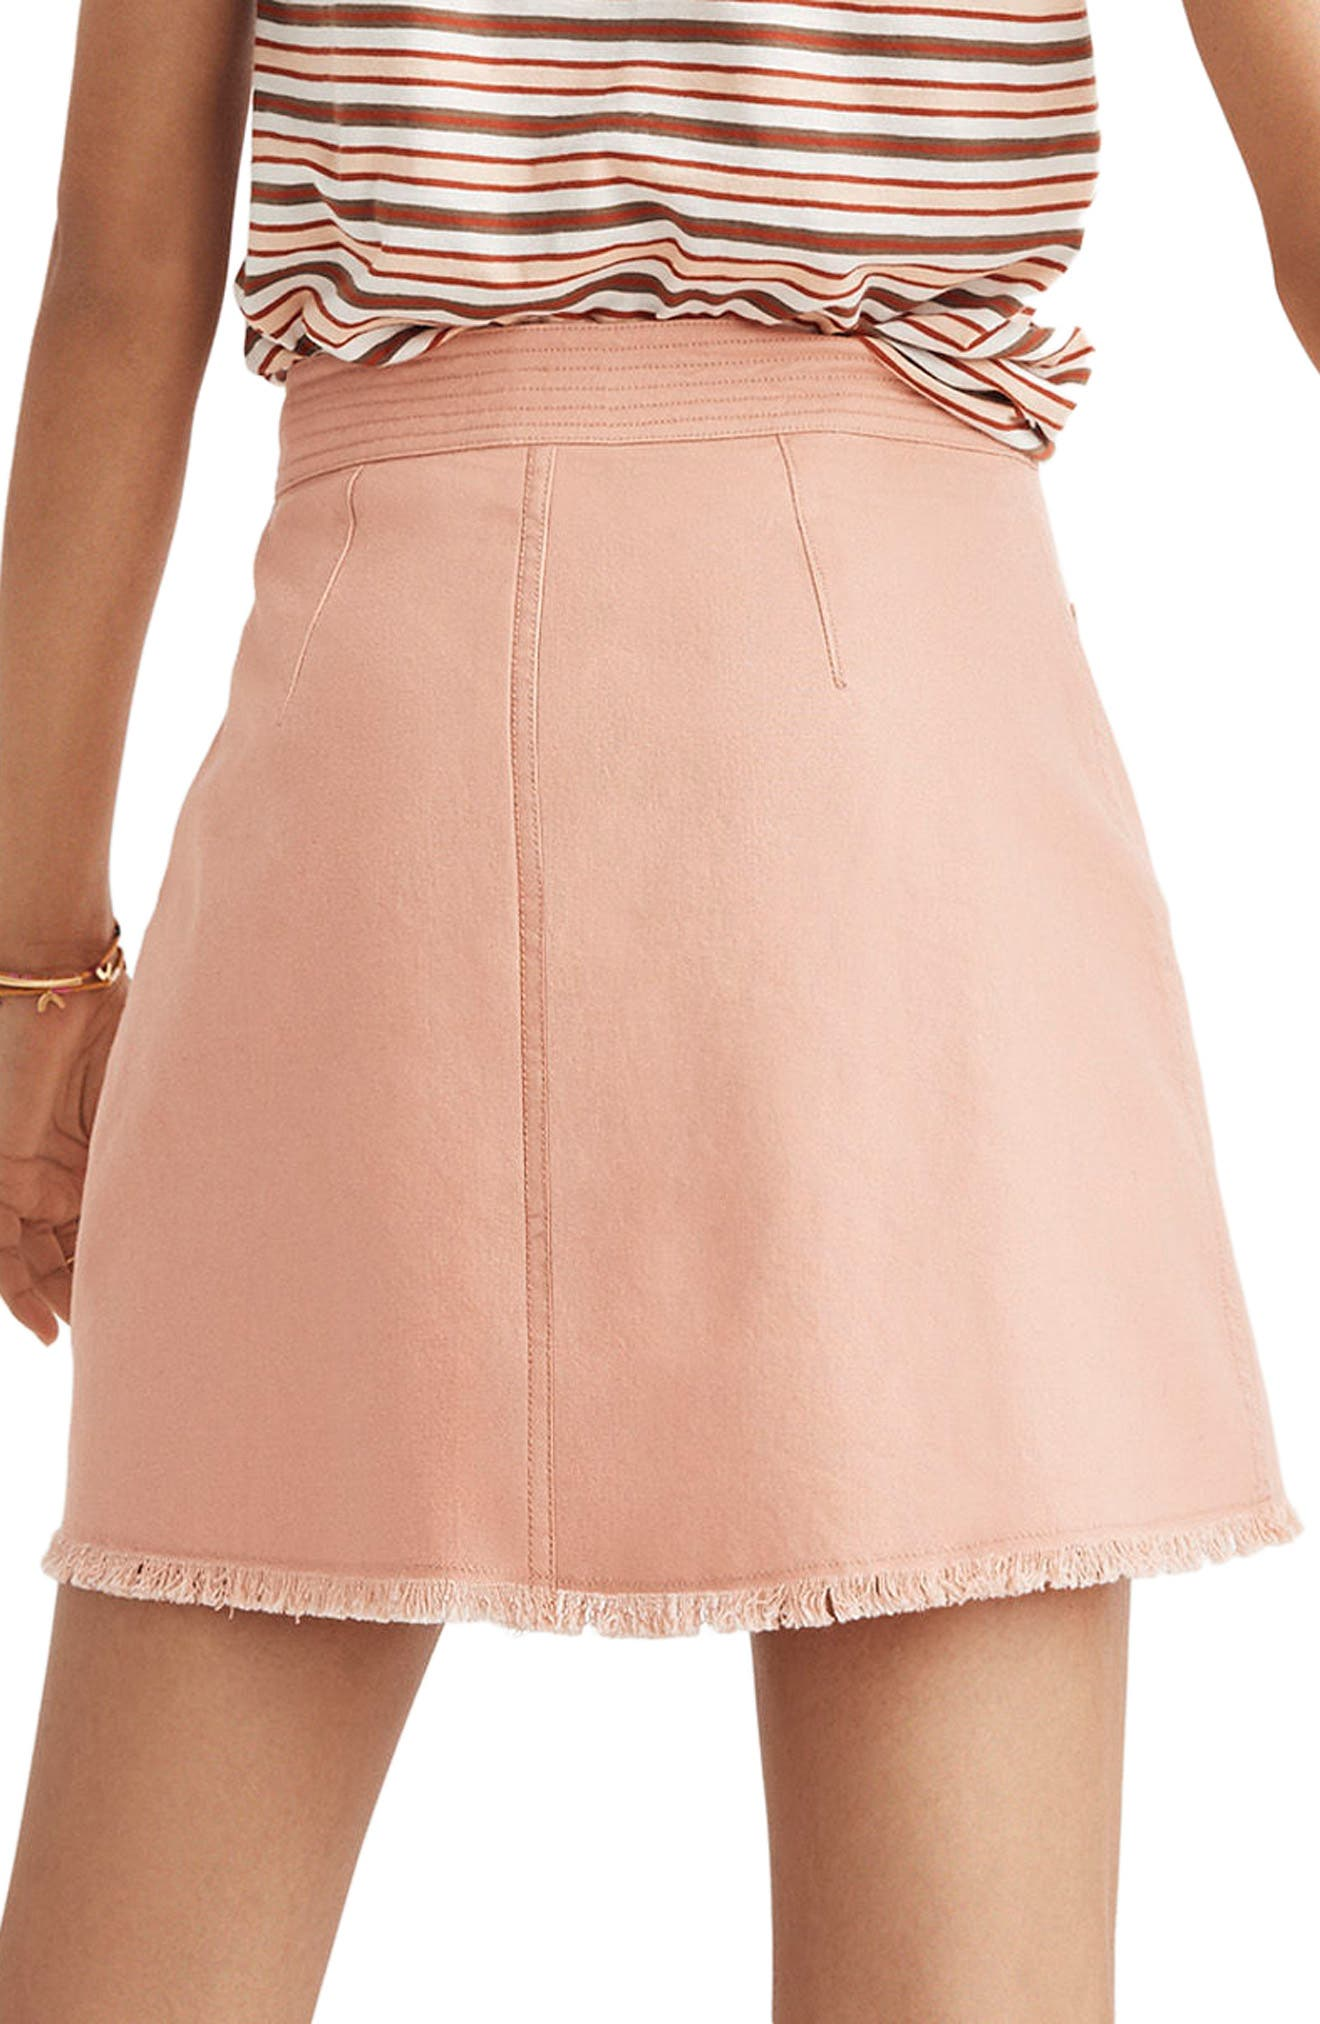 A-Line Zip Skirt,                             Alternate thumbnail 2, color,                             651